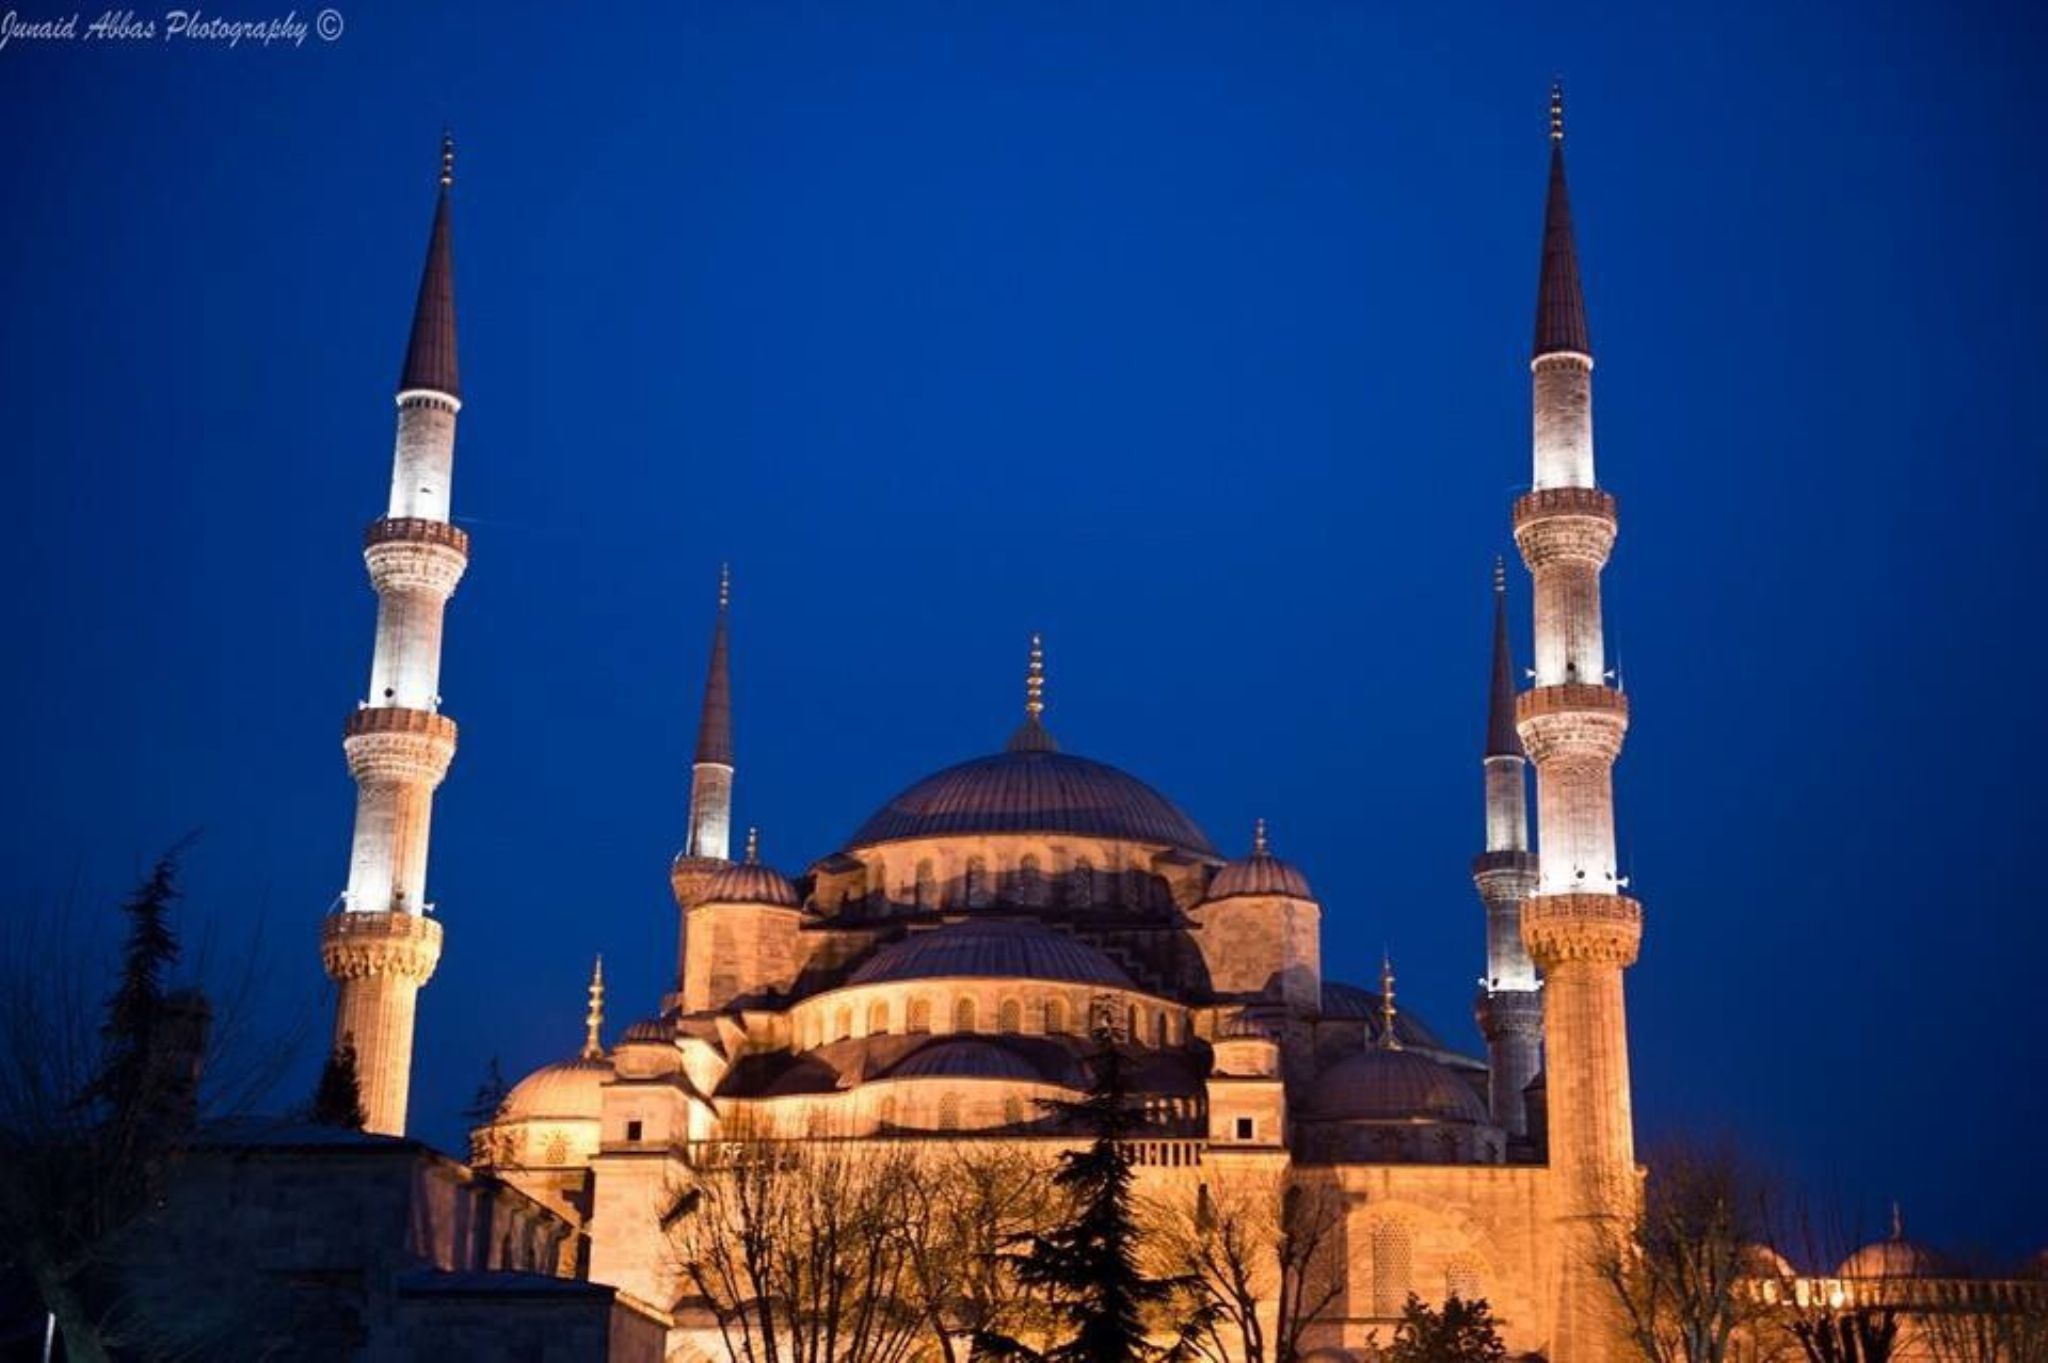 Blue Mosque by Junaid Abbas